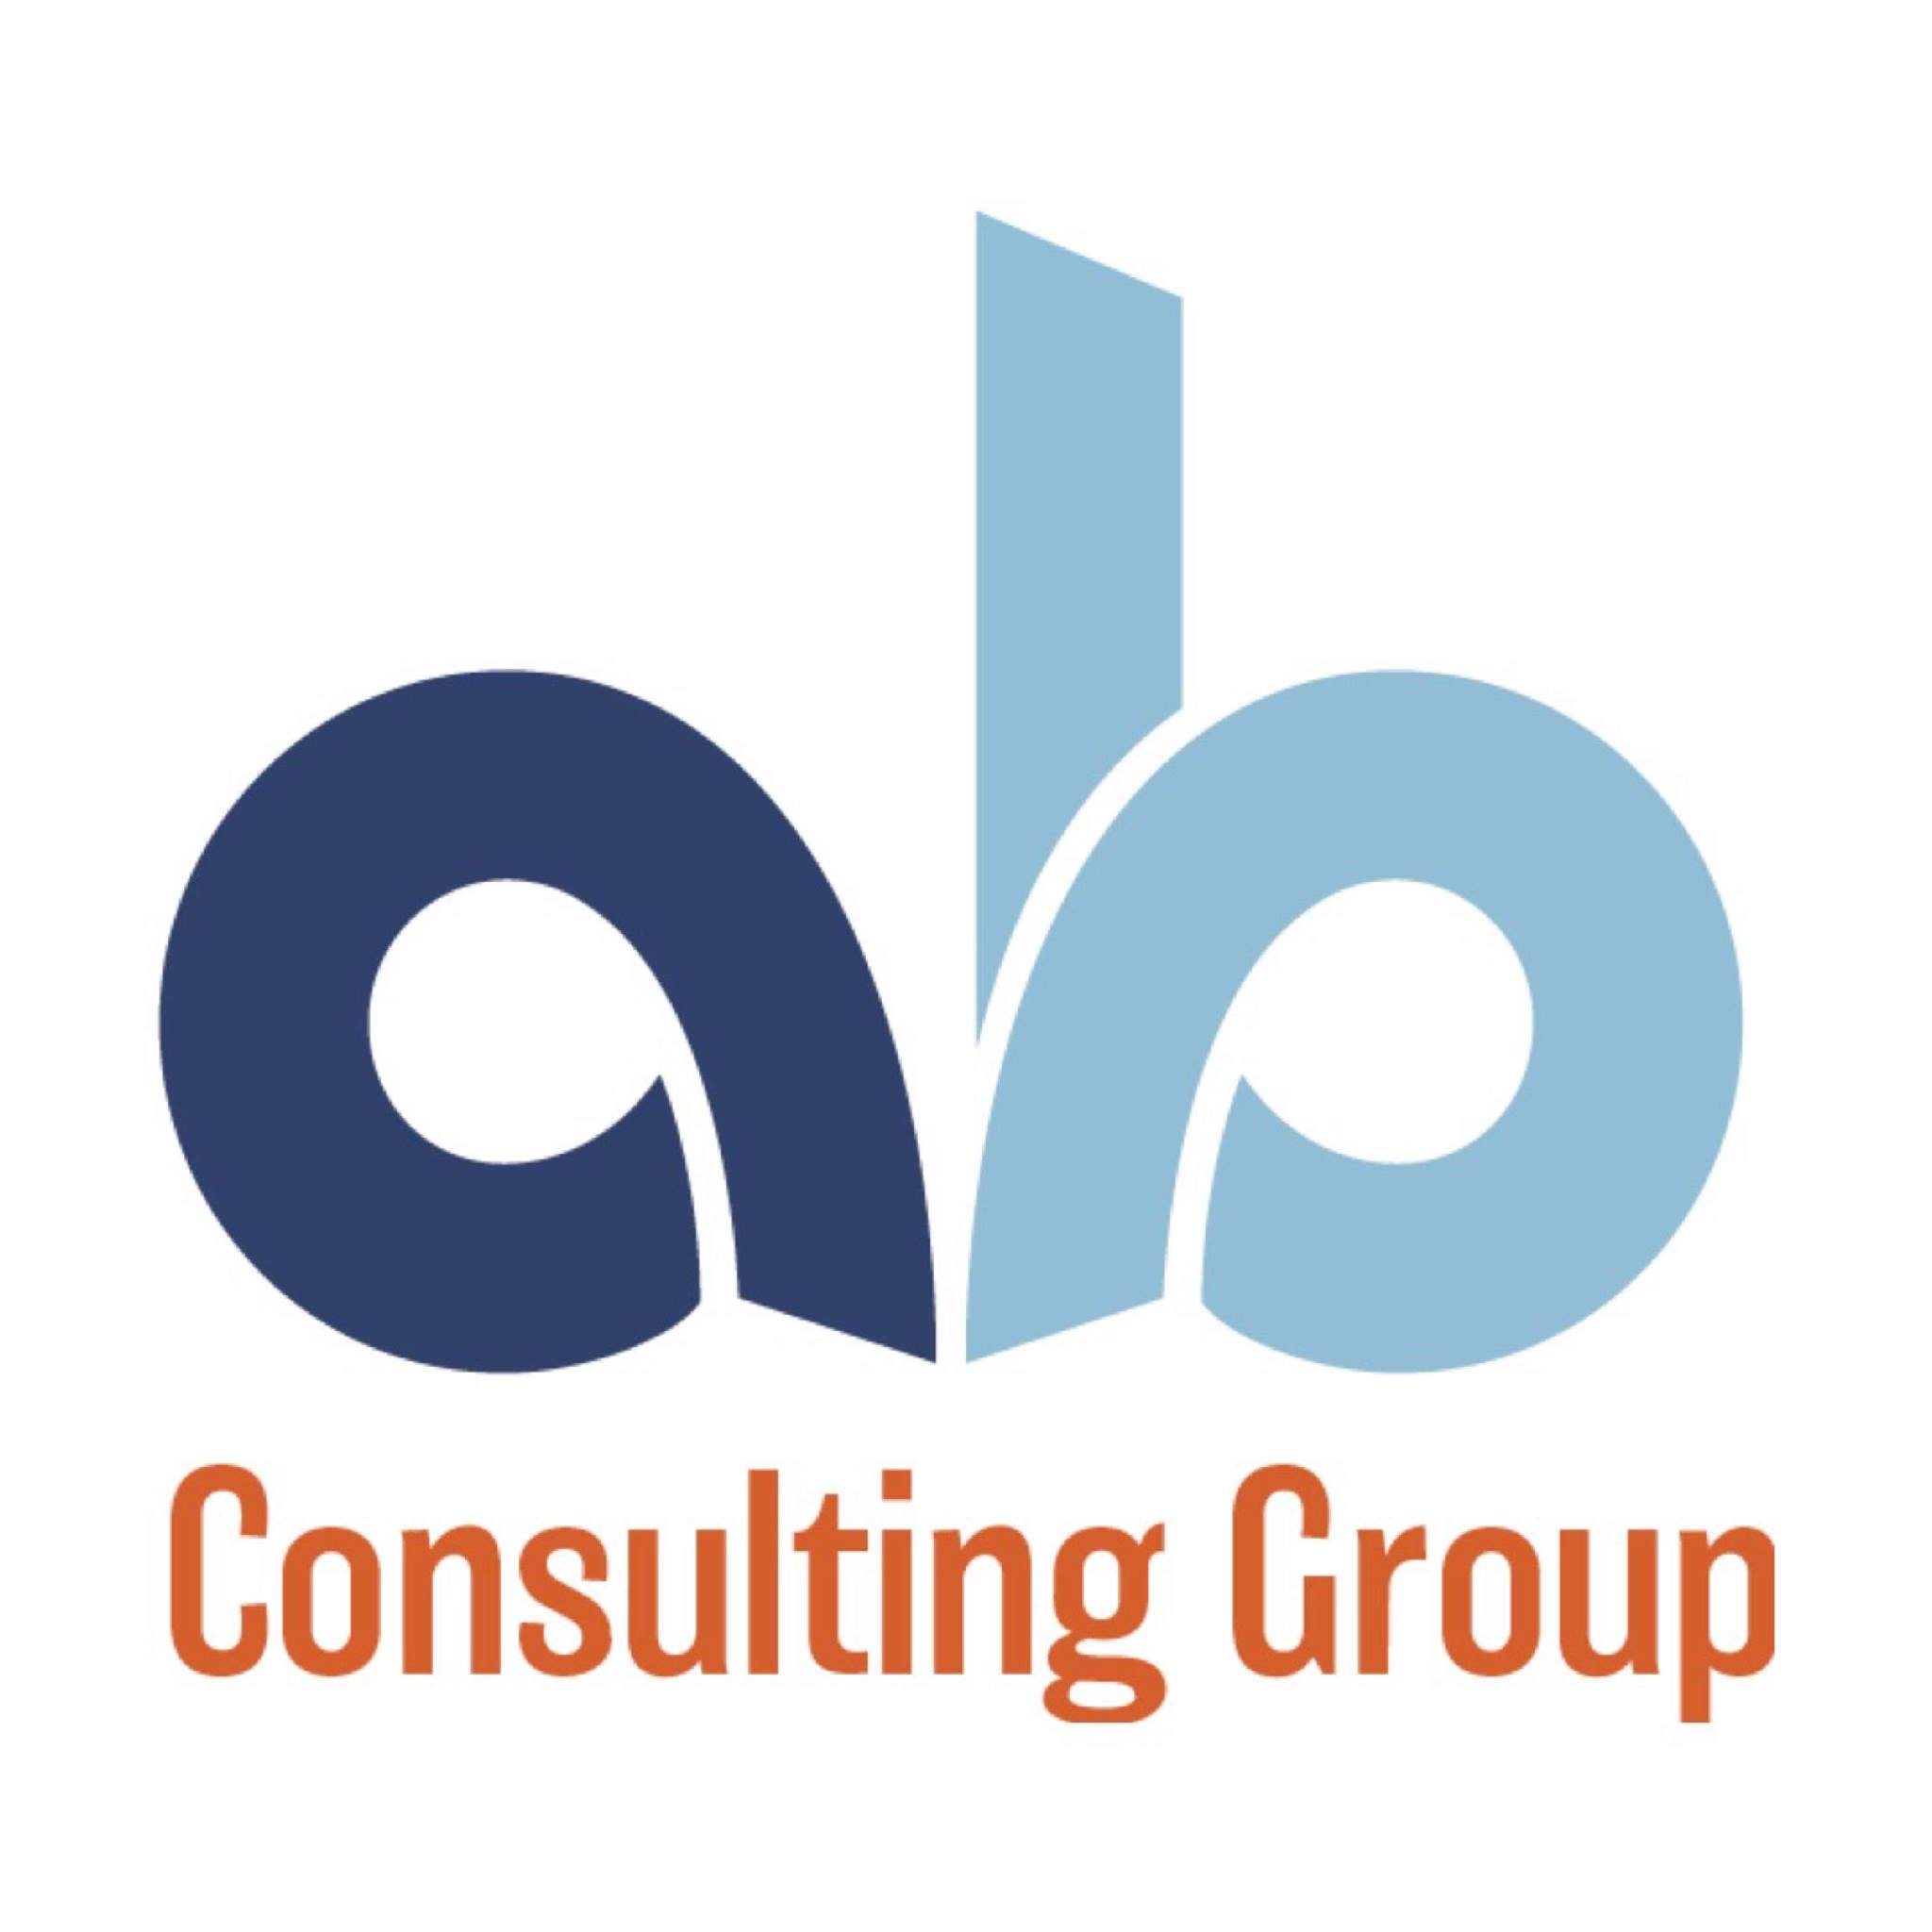 Company logo of A & B Consulting Group Web design   Marketing   Advertising